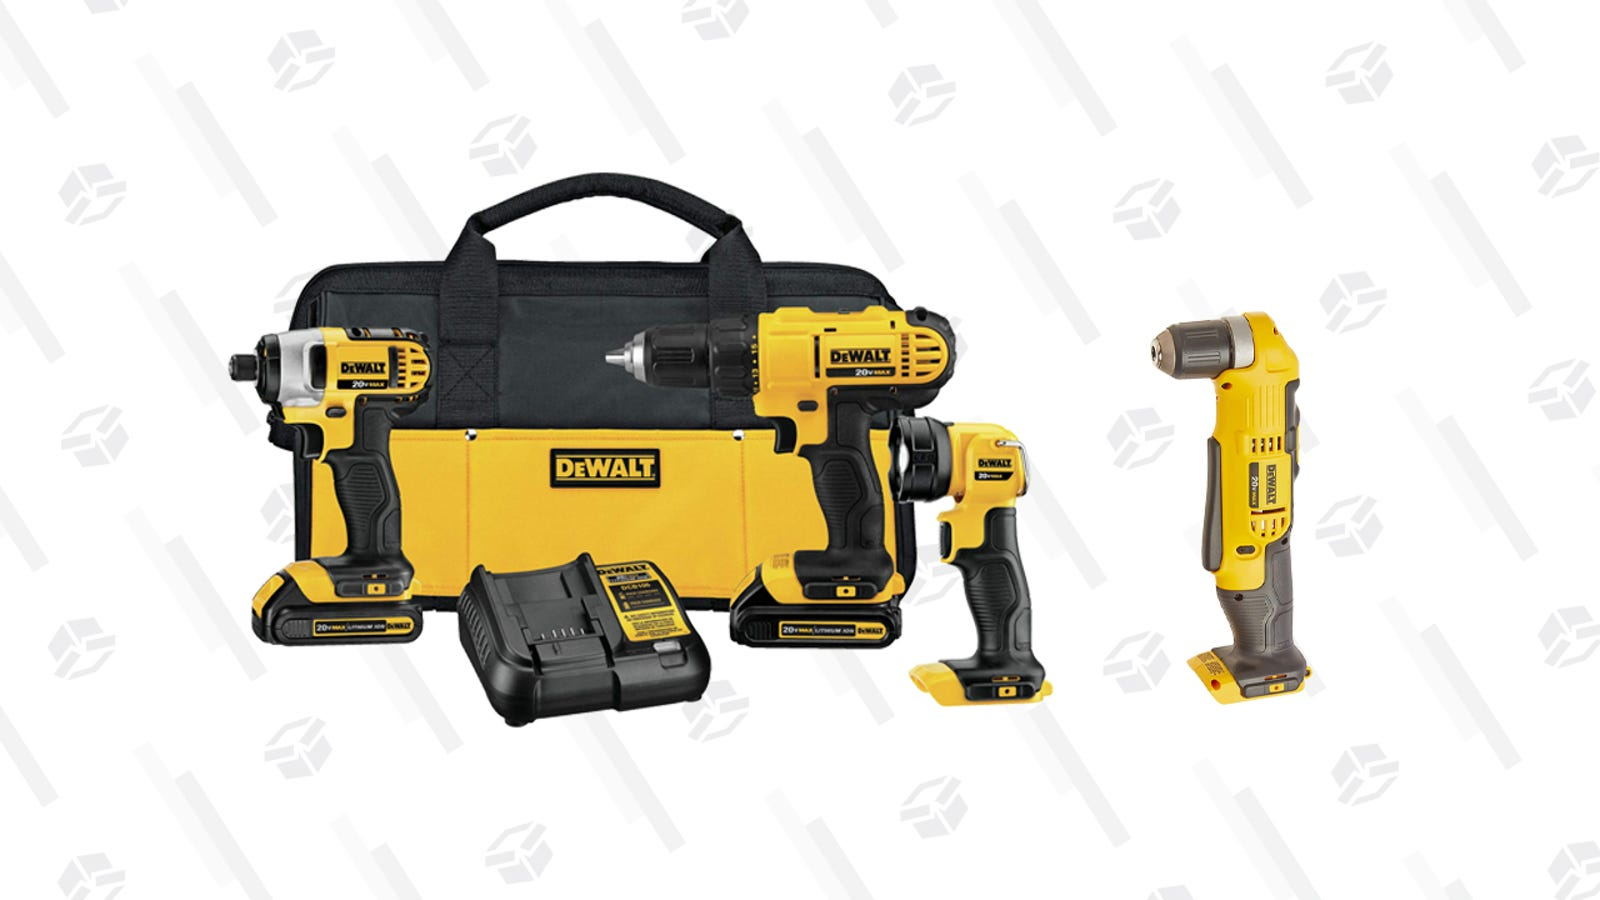 Amazon's One-Day DEWALT Sale Has a Couple of Tools For Your Next DIY Project